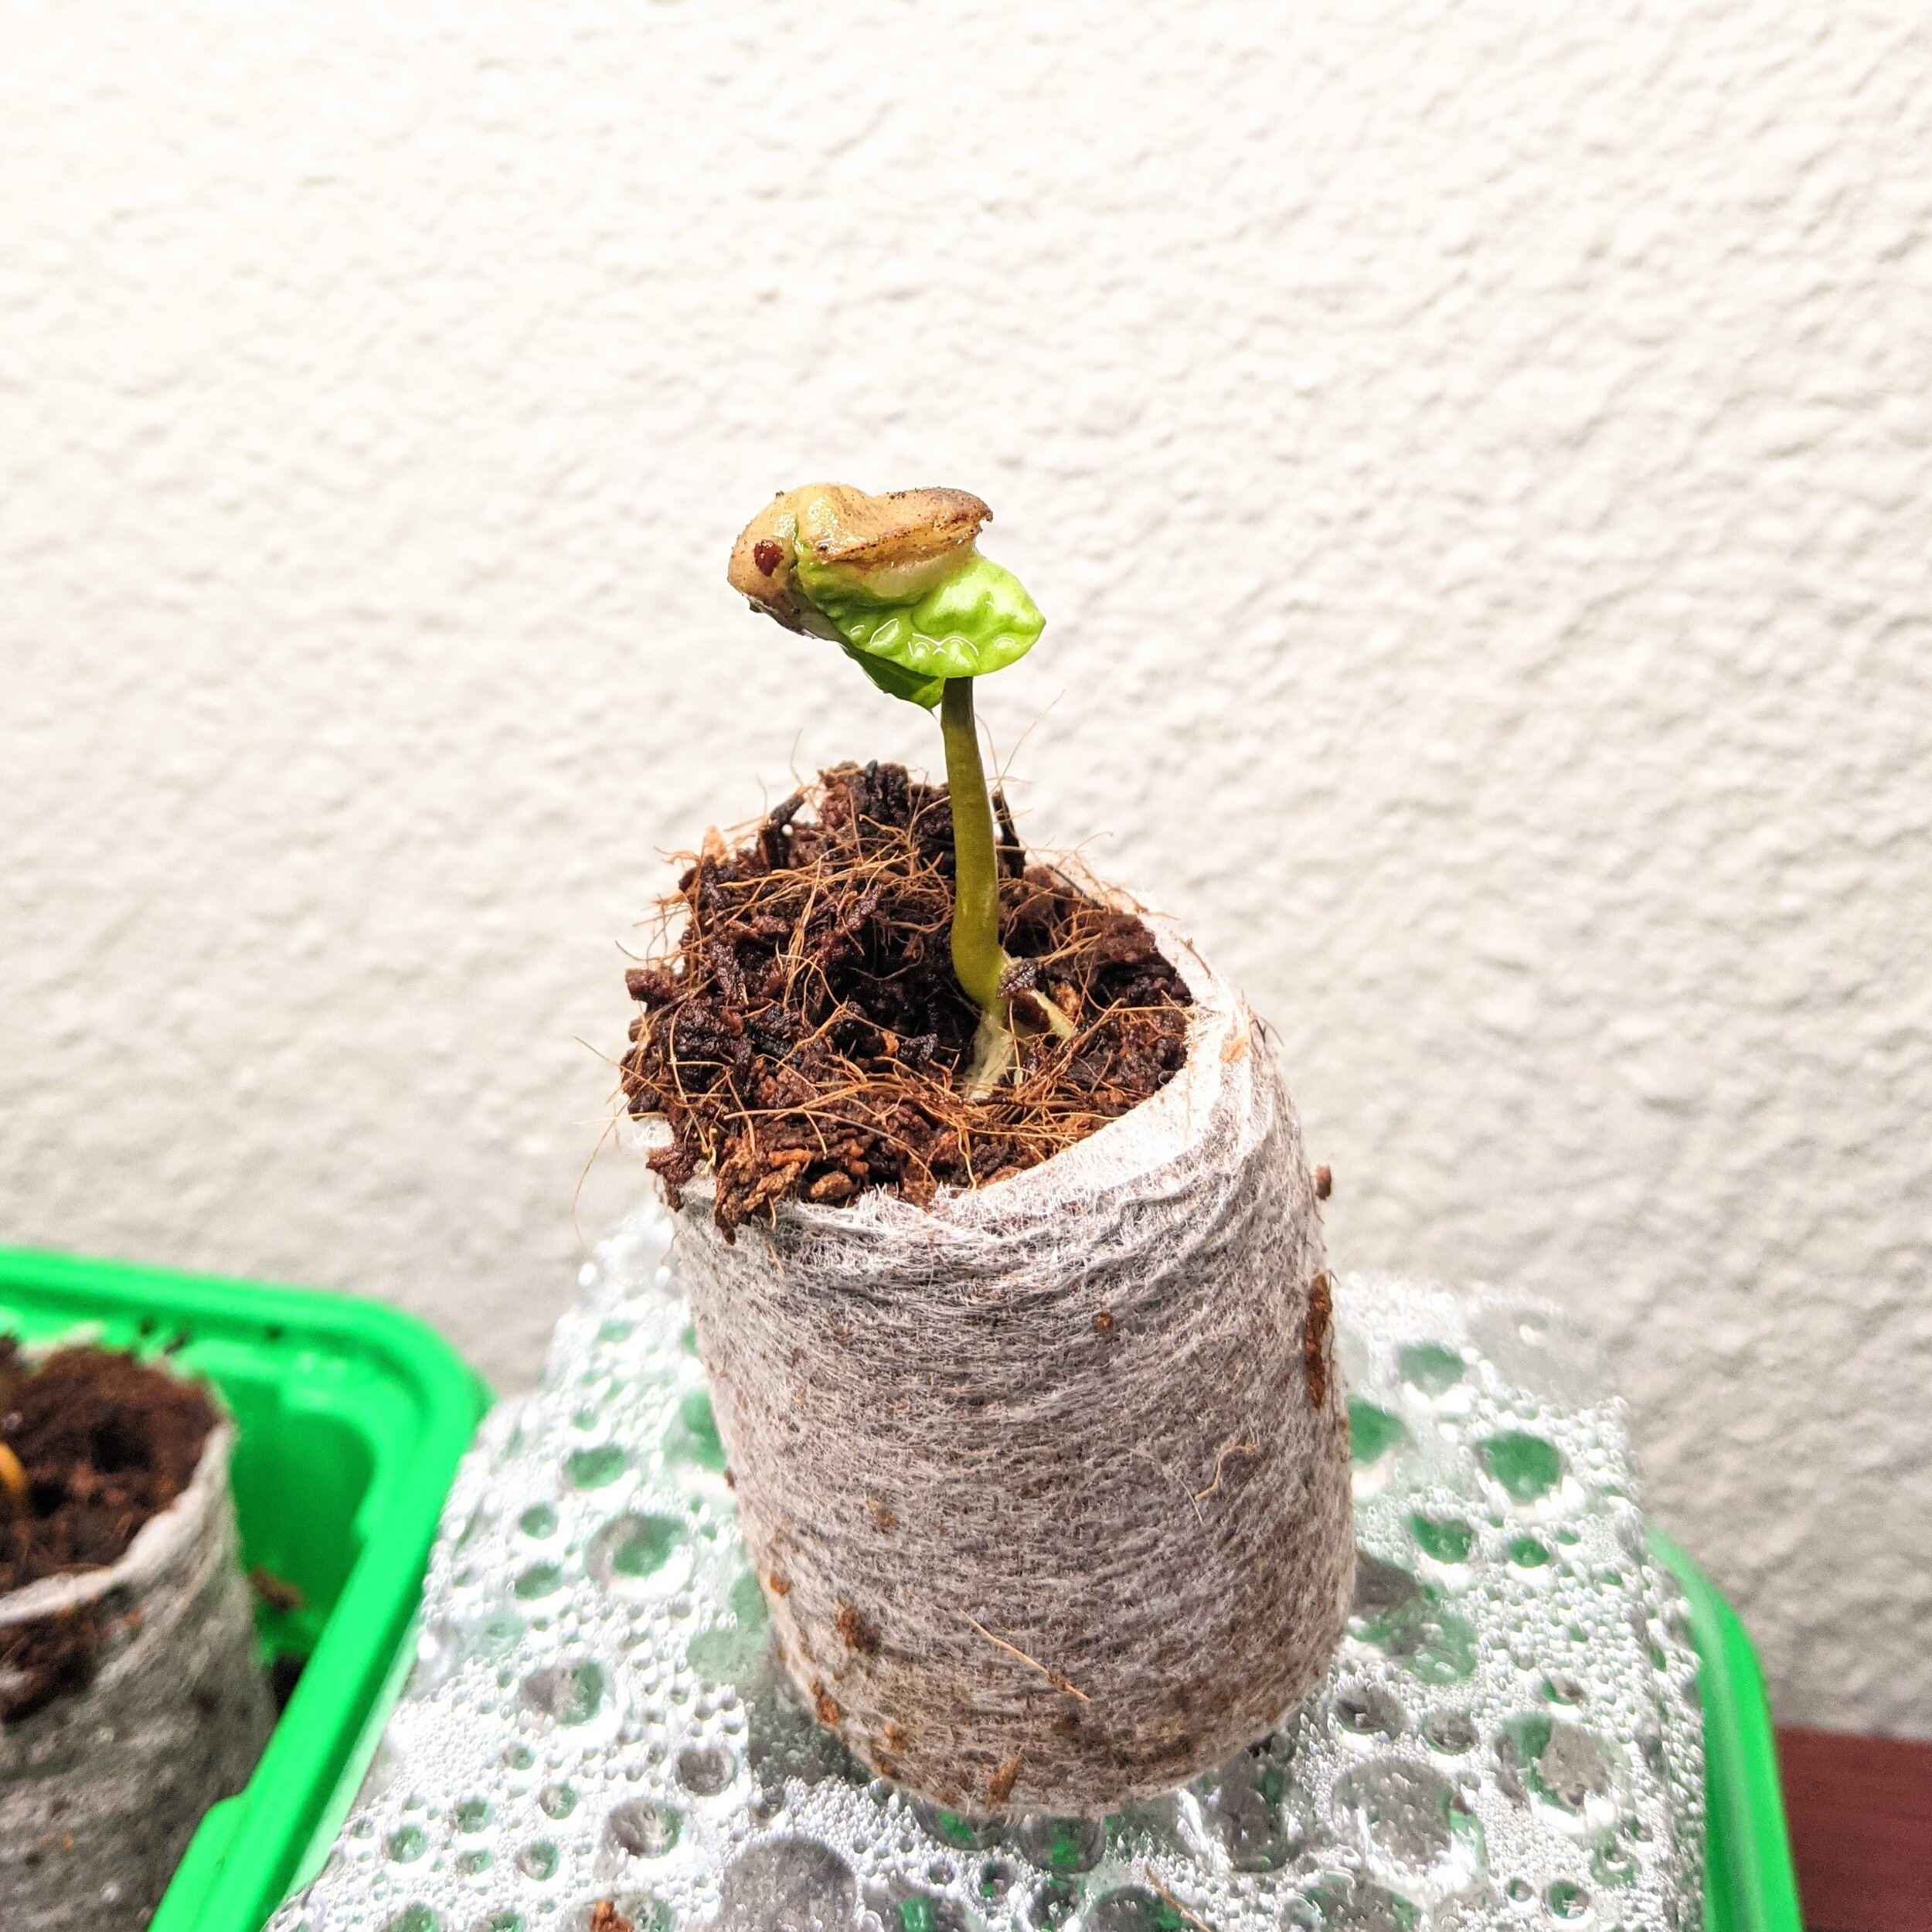 A happy brand new Coffea Catura 'Dwarf Coffee' seedling! See how moist it looks on the surface? It really needs that humidity to break out of the tough shell of the seed!